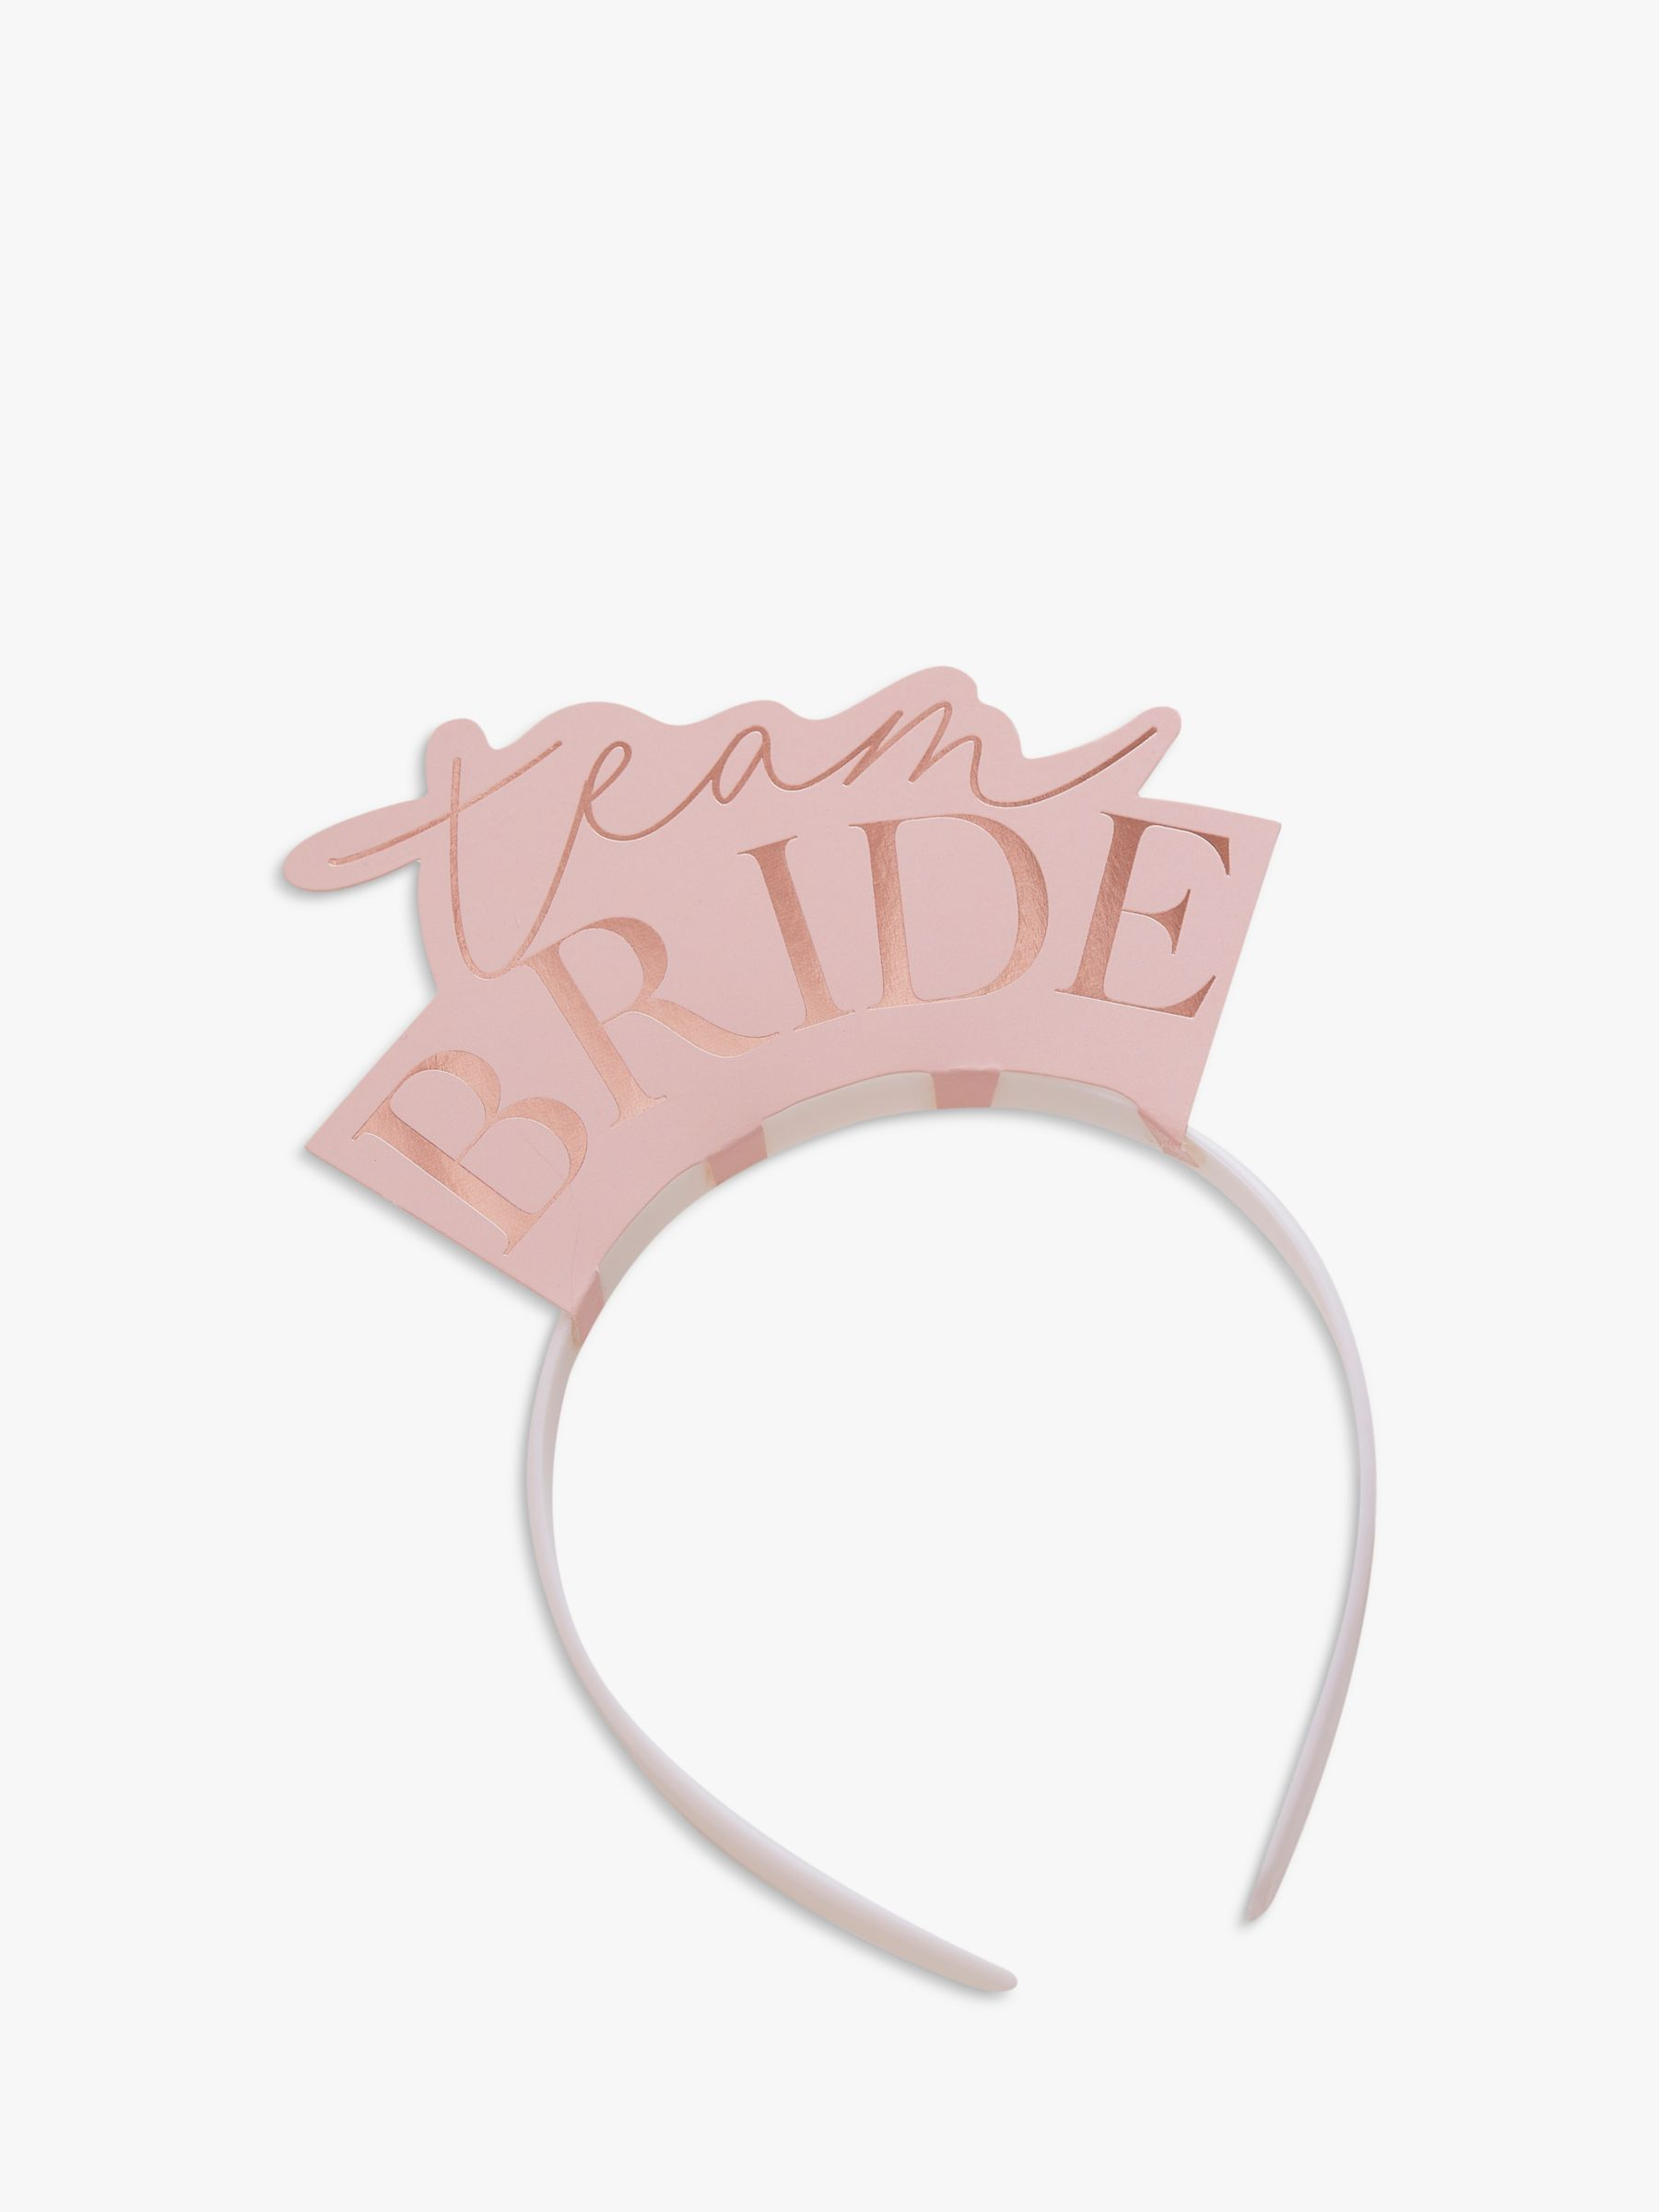 Ginger Ray Ginger Ray Rose Gold Team Bride Headbands, Pack of 5